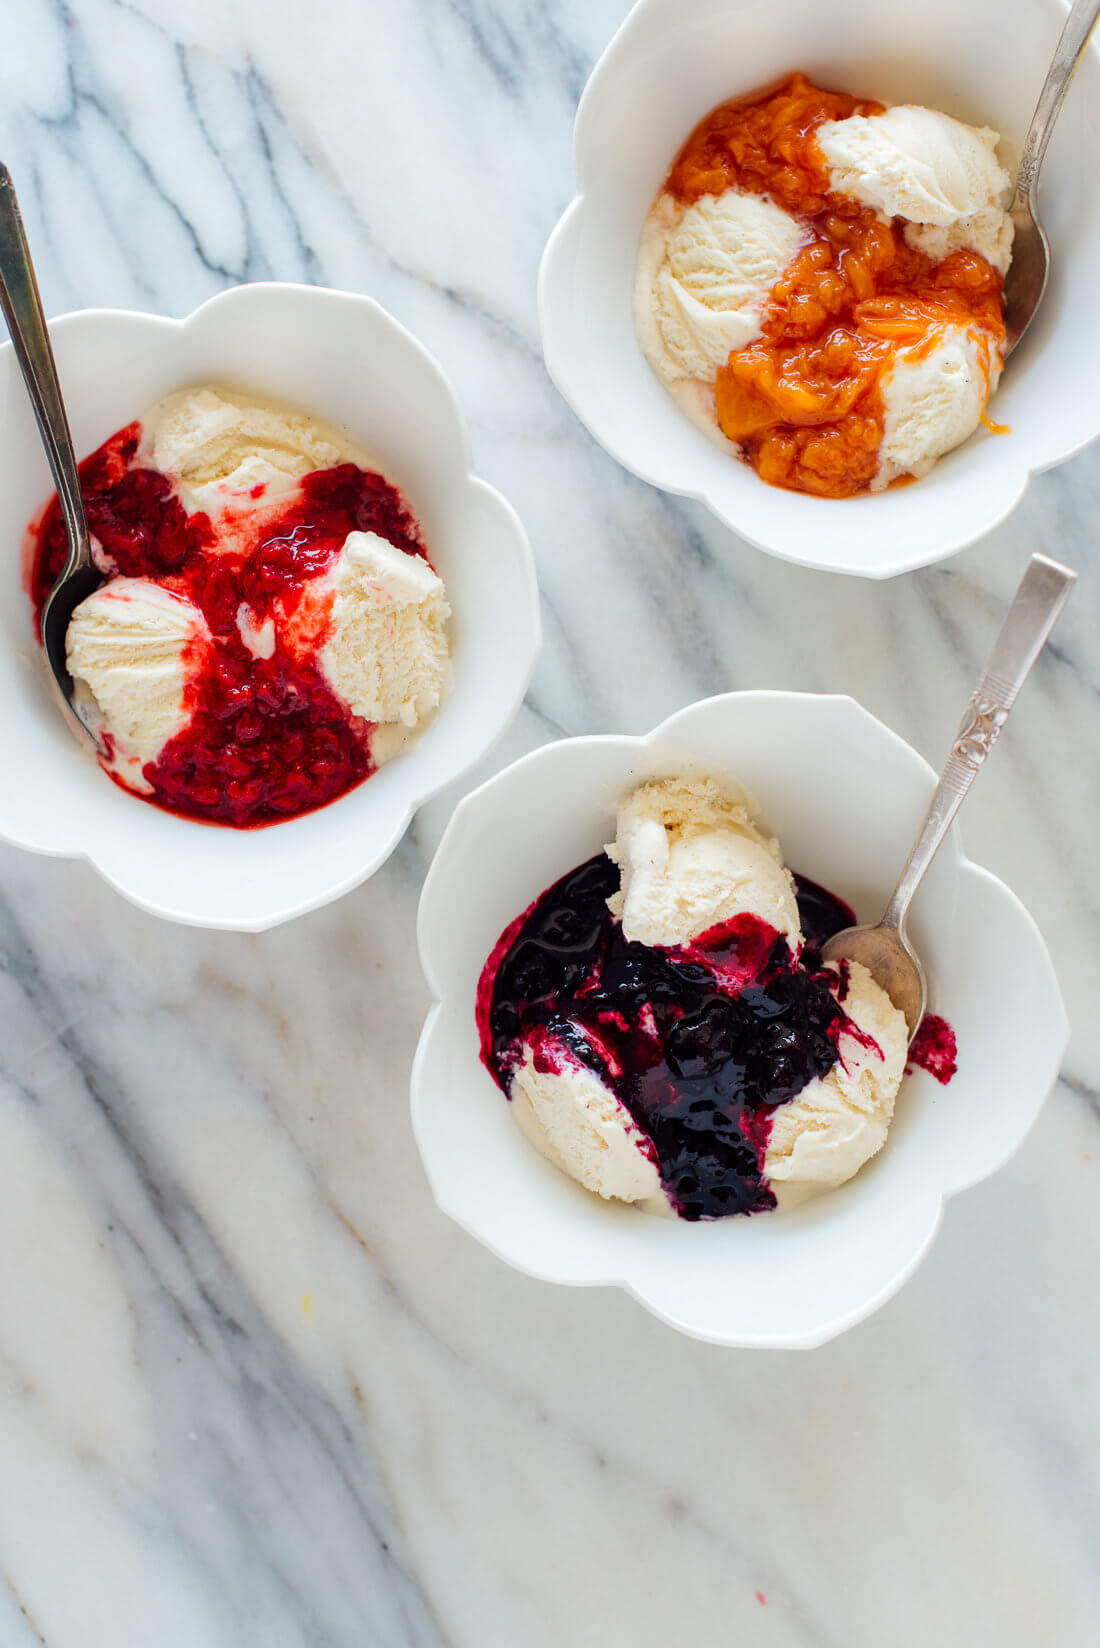 fruit compote on ice cream